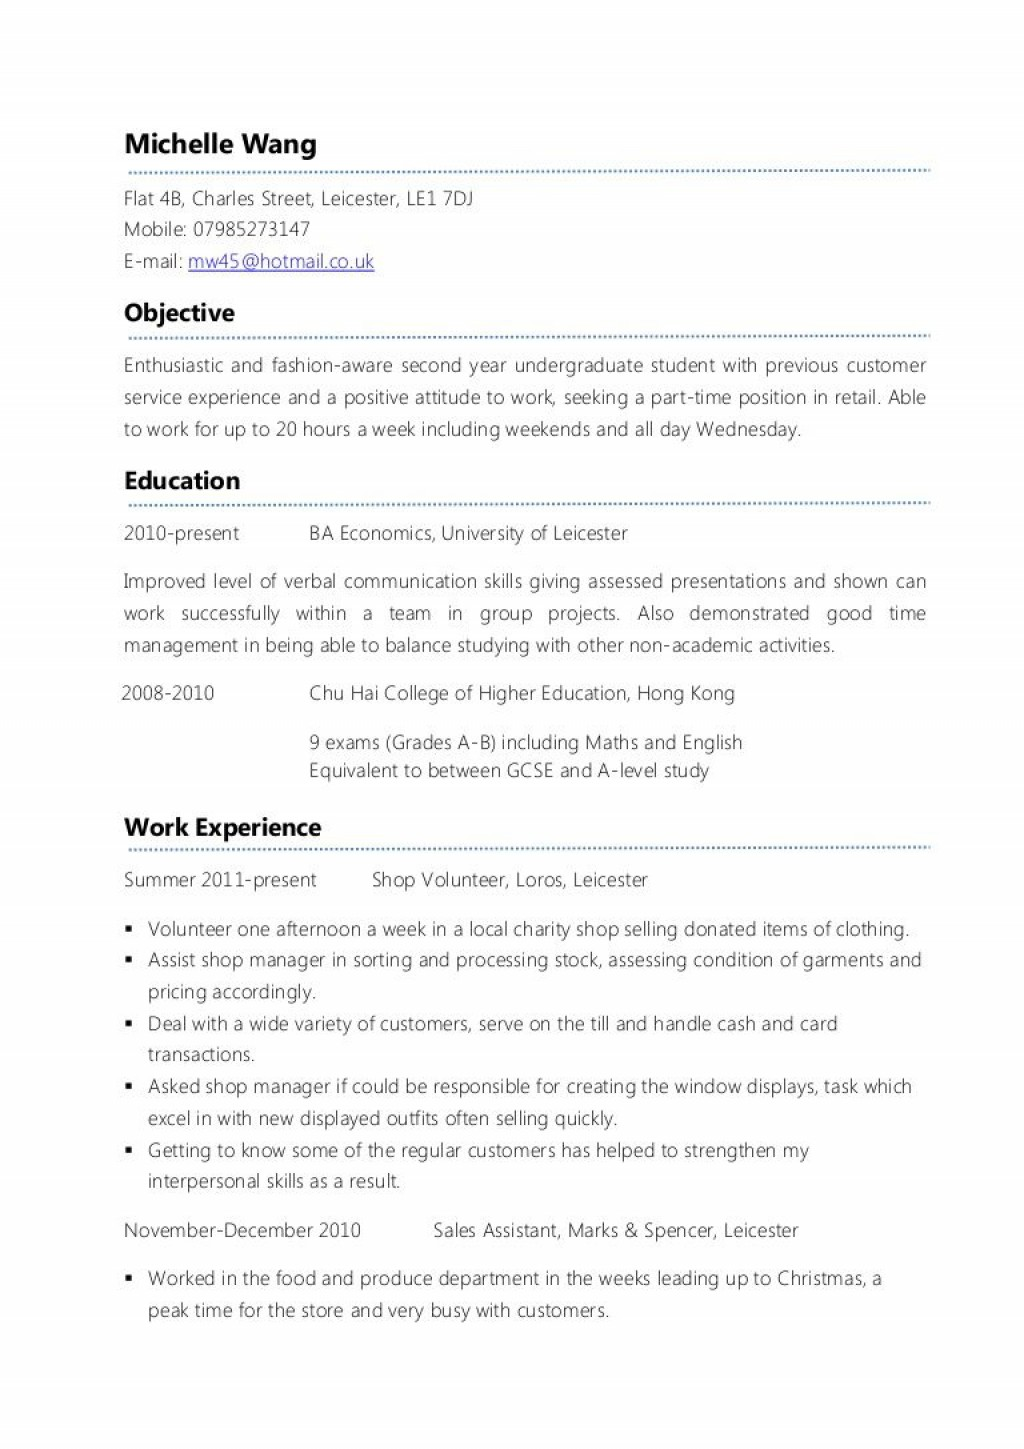 007 Frightening Part Time Job Resume Template Sample  Student Summary ExampleLarge